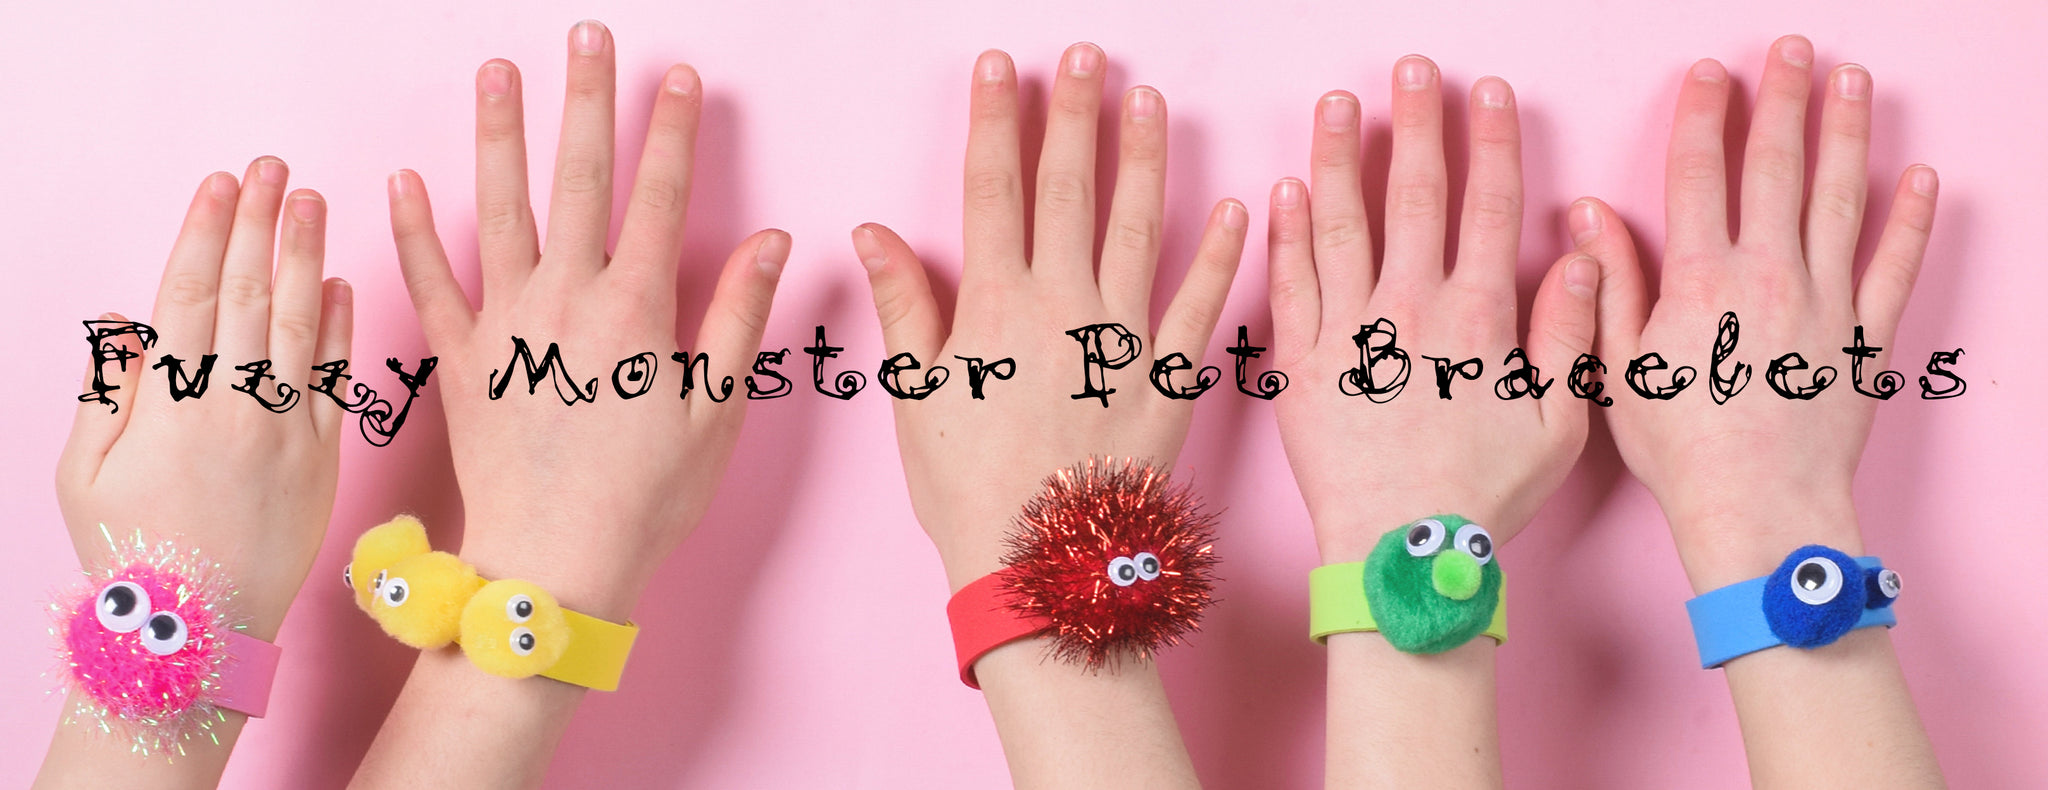 DIY - FUZZY MONSTER PET BRACELETS